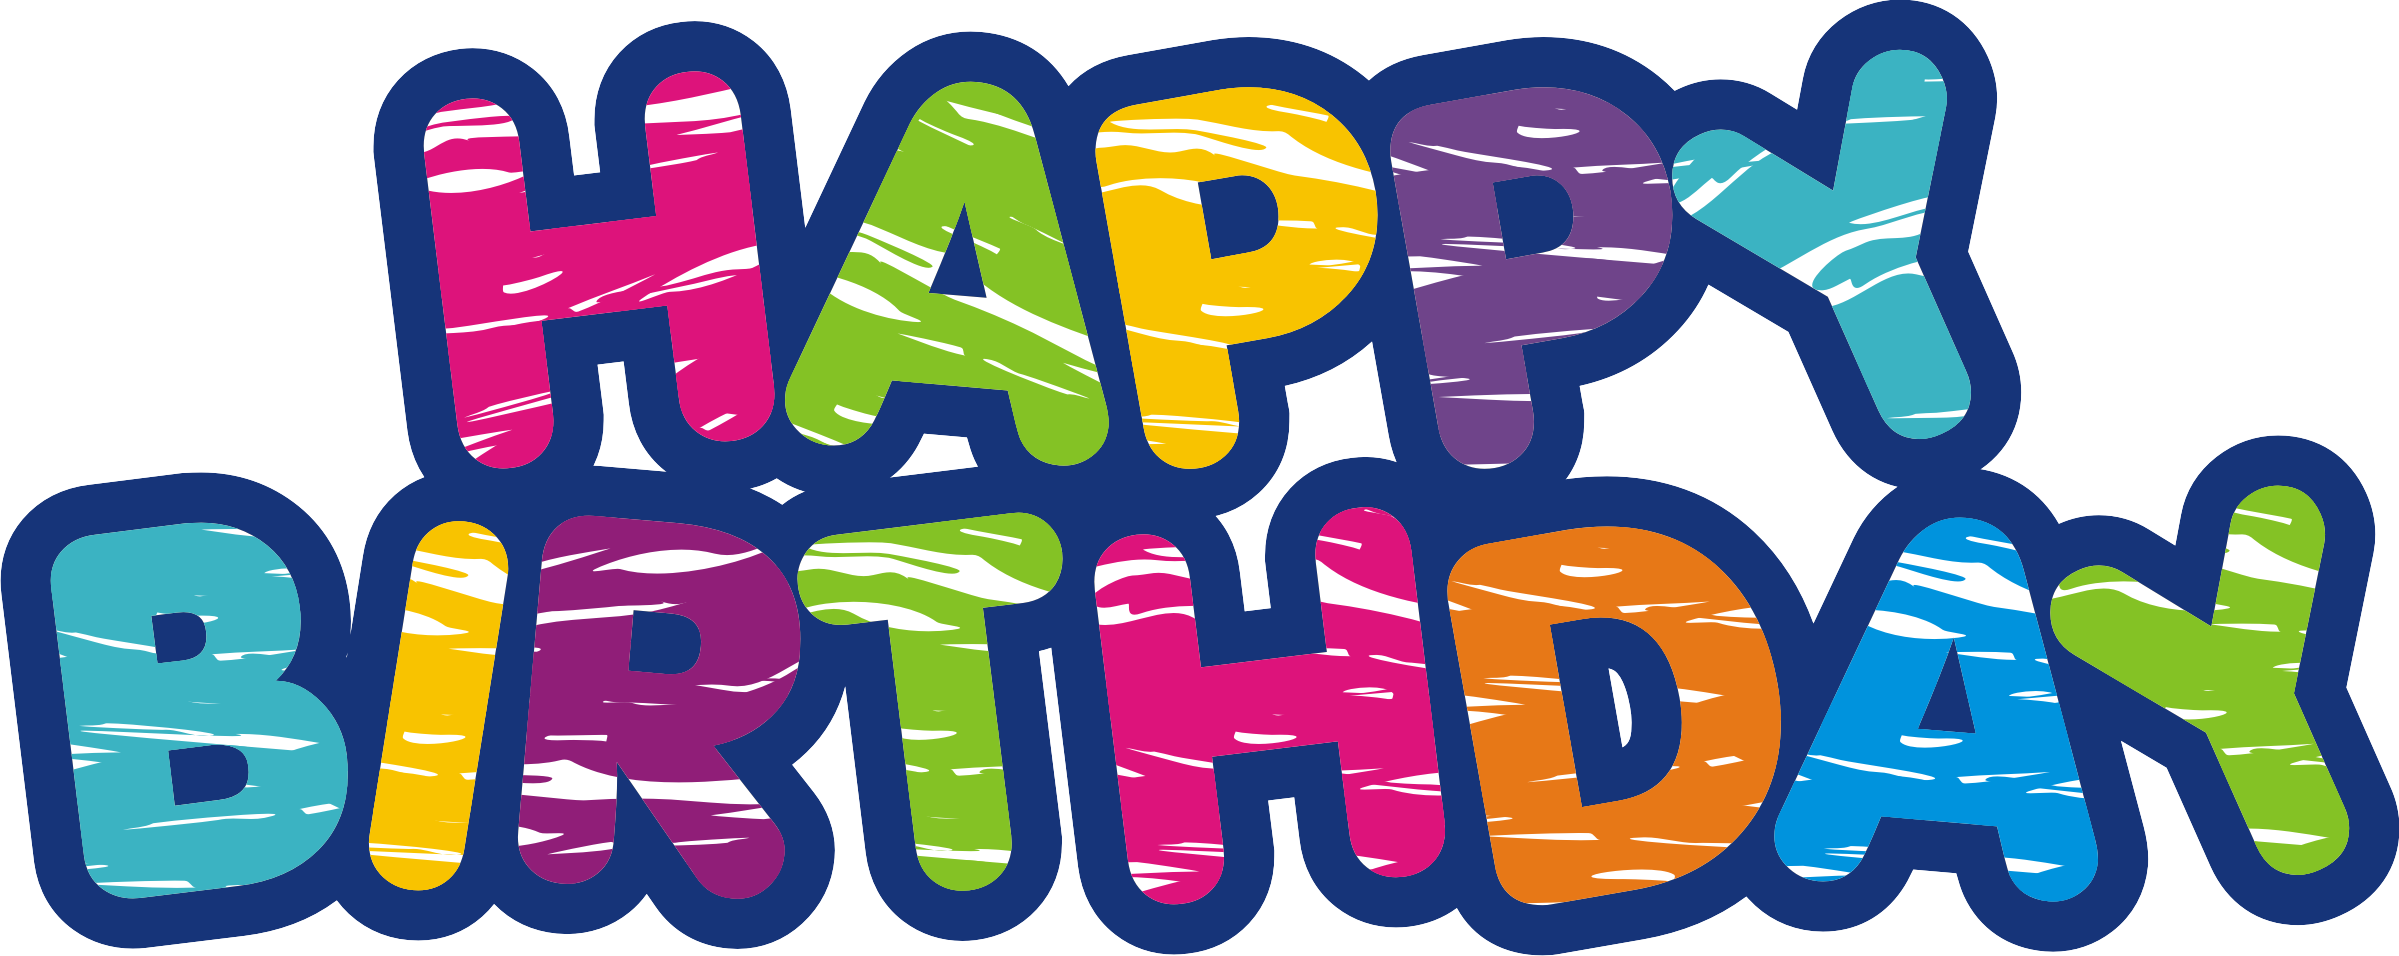 Happy birthday transparent png. Images free download